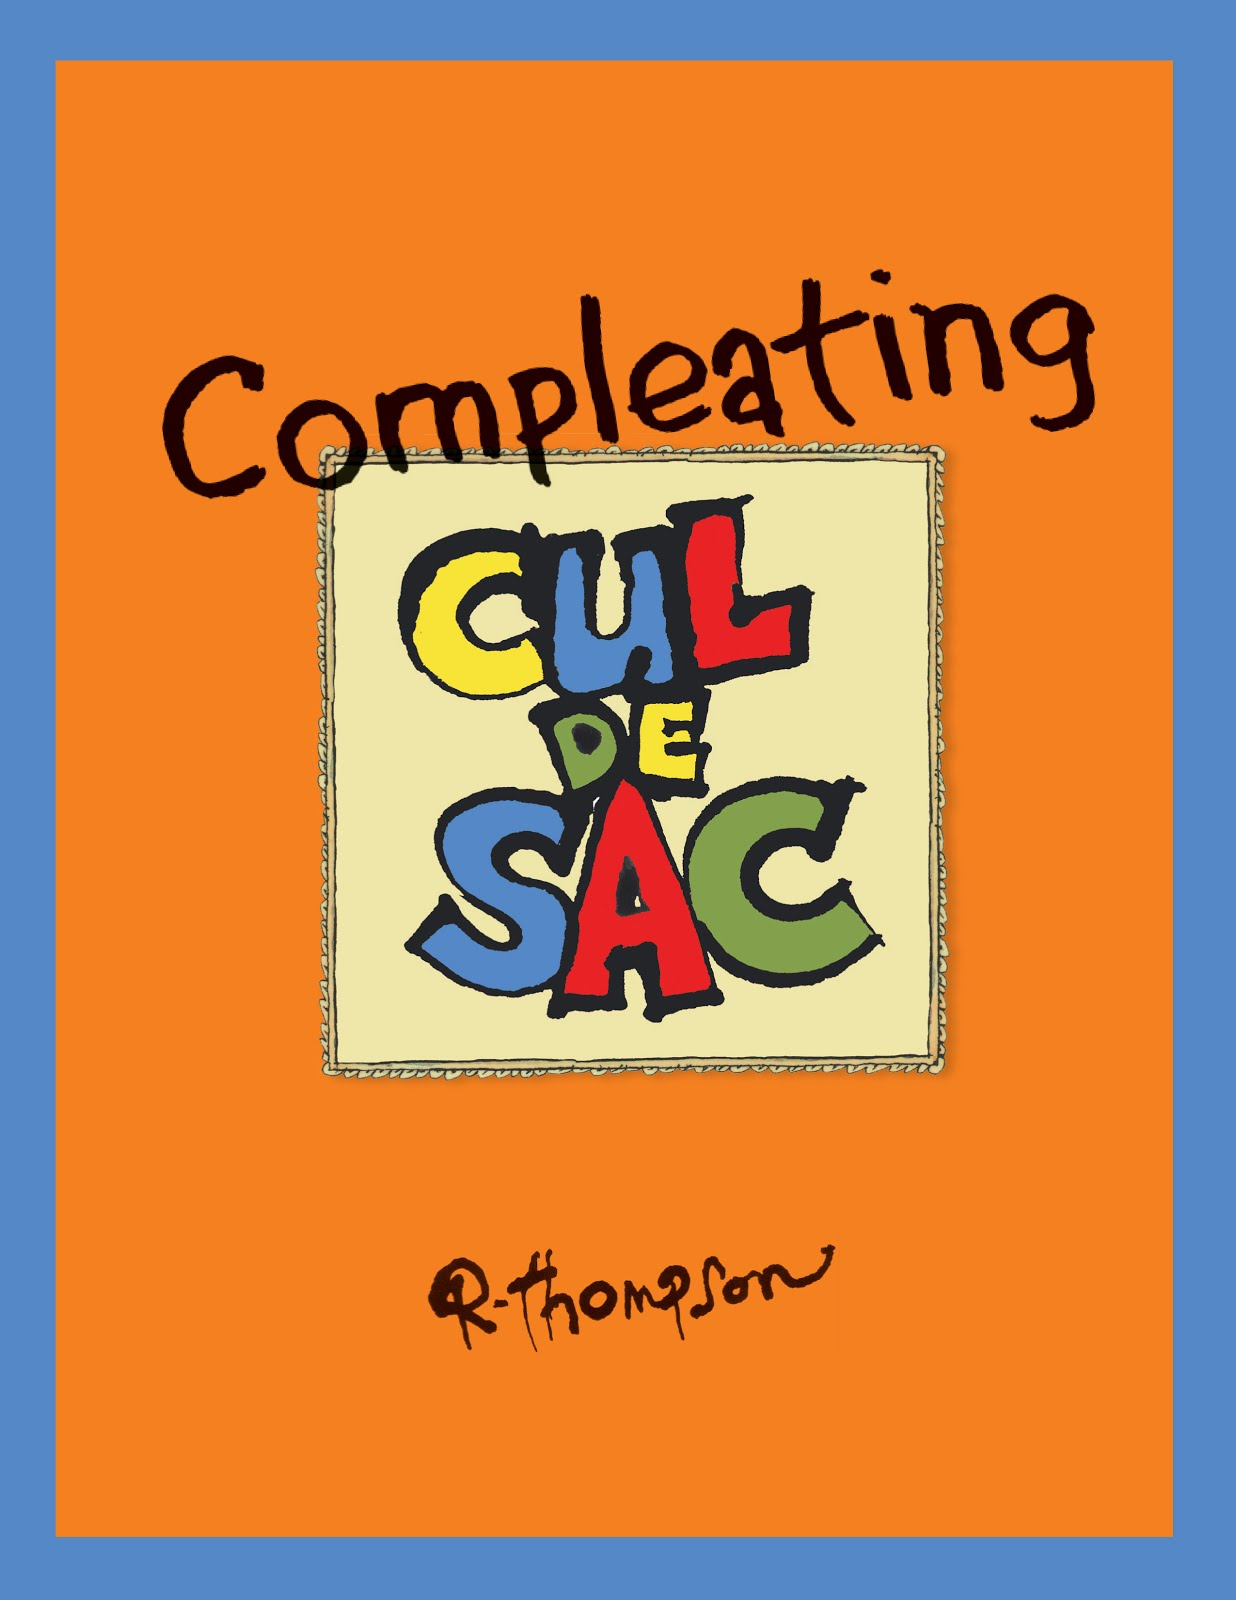 Compleating Cul de Sac available now